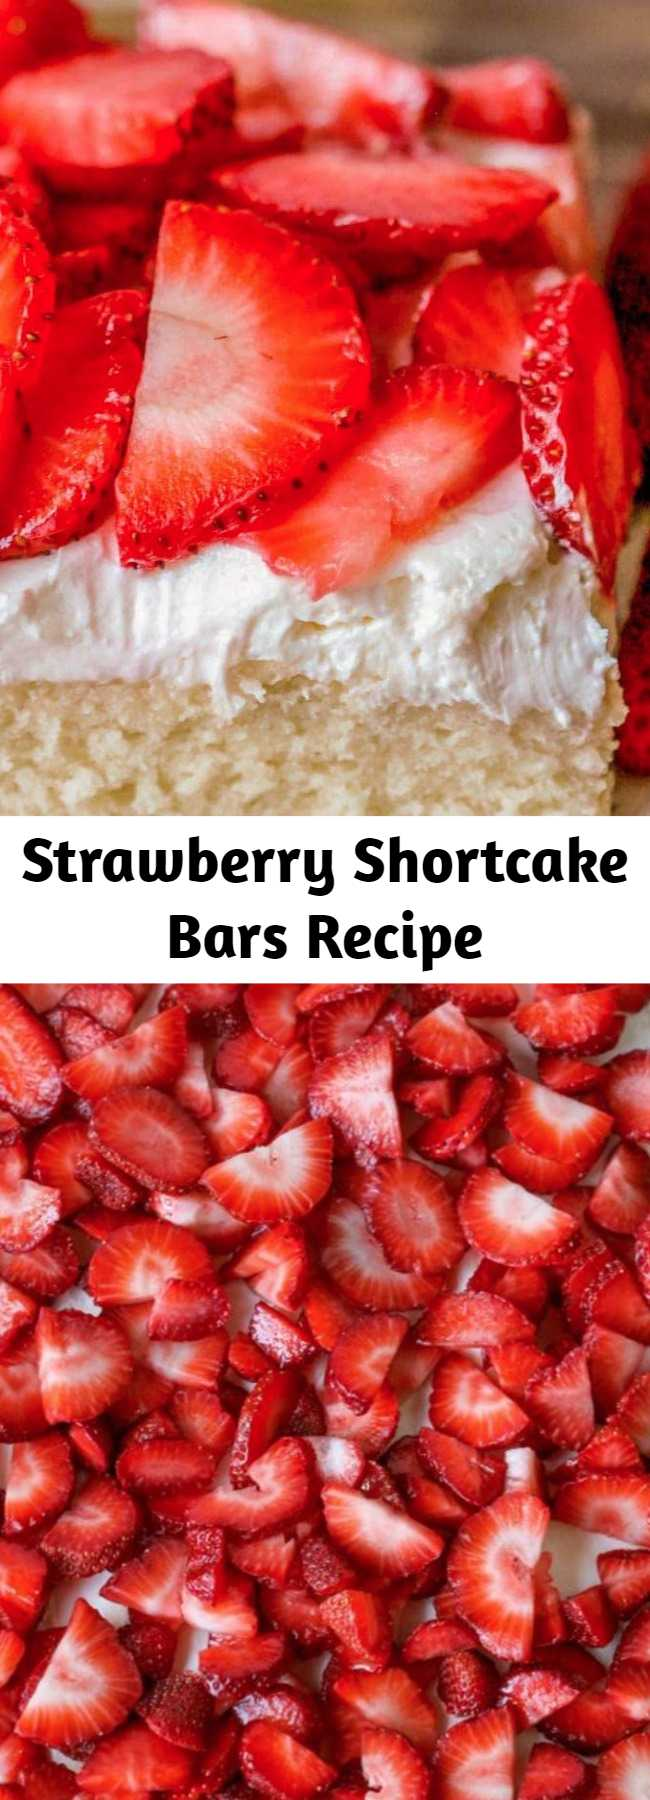 Strawberry Shortcake Bars Recipe - A soft vanilla cake-like crust perfectly combines with a light layer of whipped cream cheese frosting. Top it off with fresh strawberries for delicious strawberry shortcake bars!